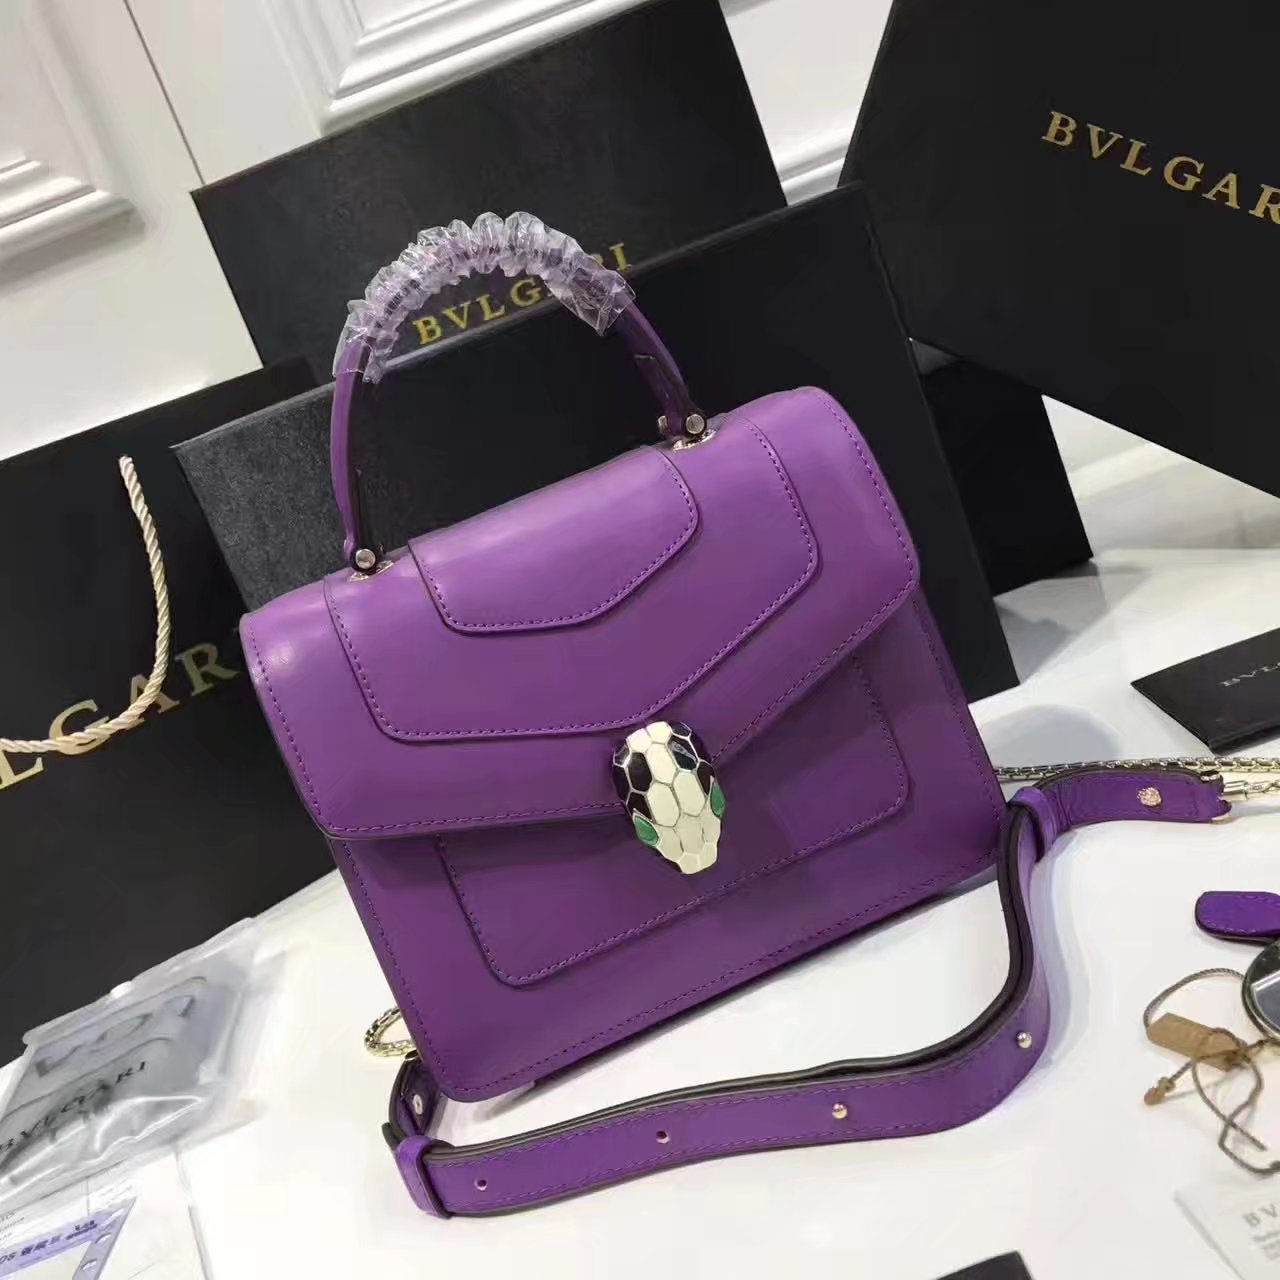 Bulgari Serpenti Forever Flap Cover Bag Purple With Malachite Eyes